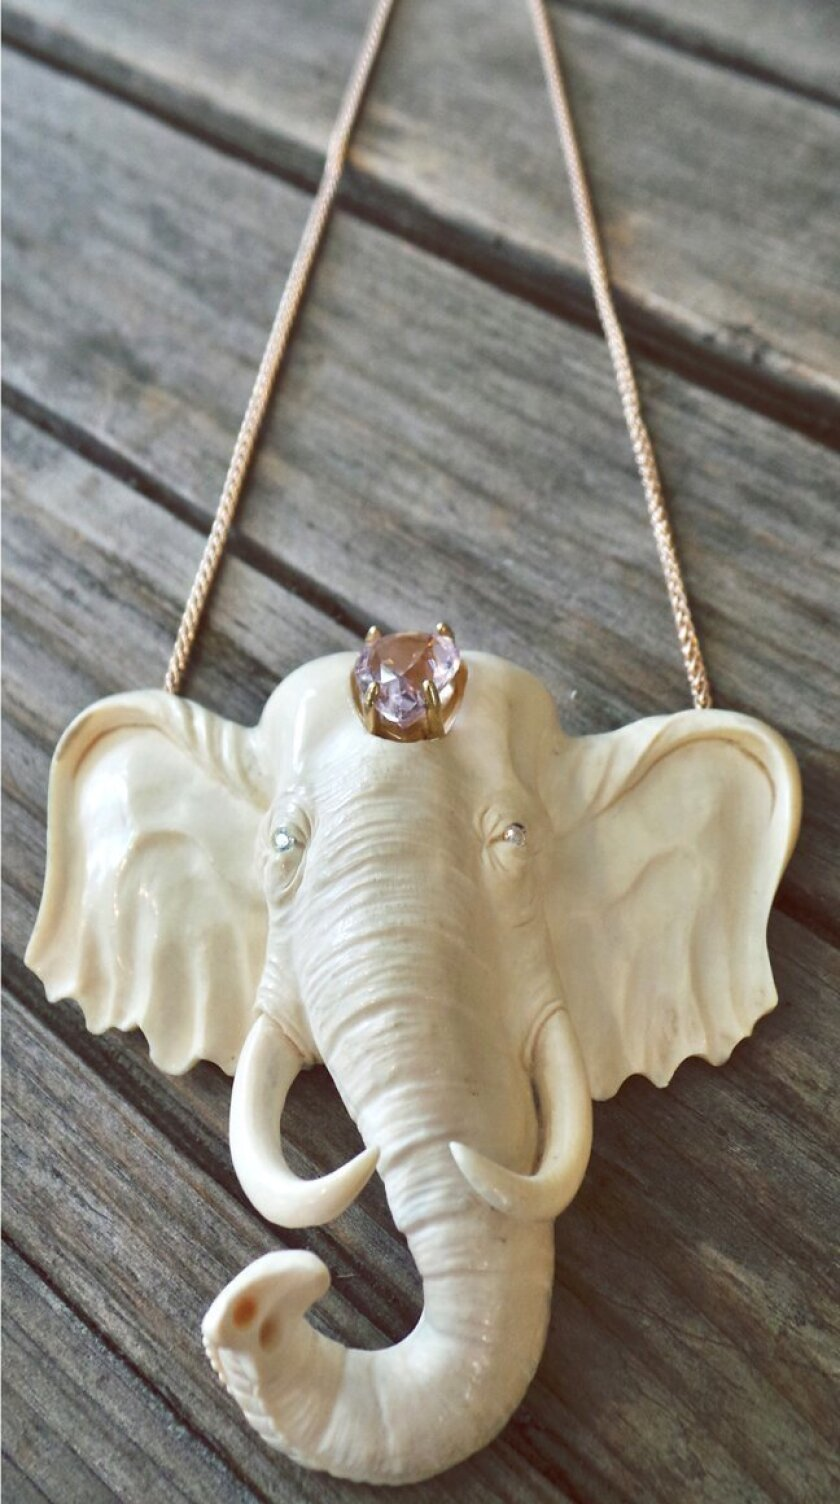 Jewelry sample by Leslie Fastlicht Russo of LFR Designs